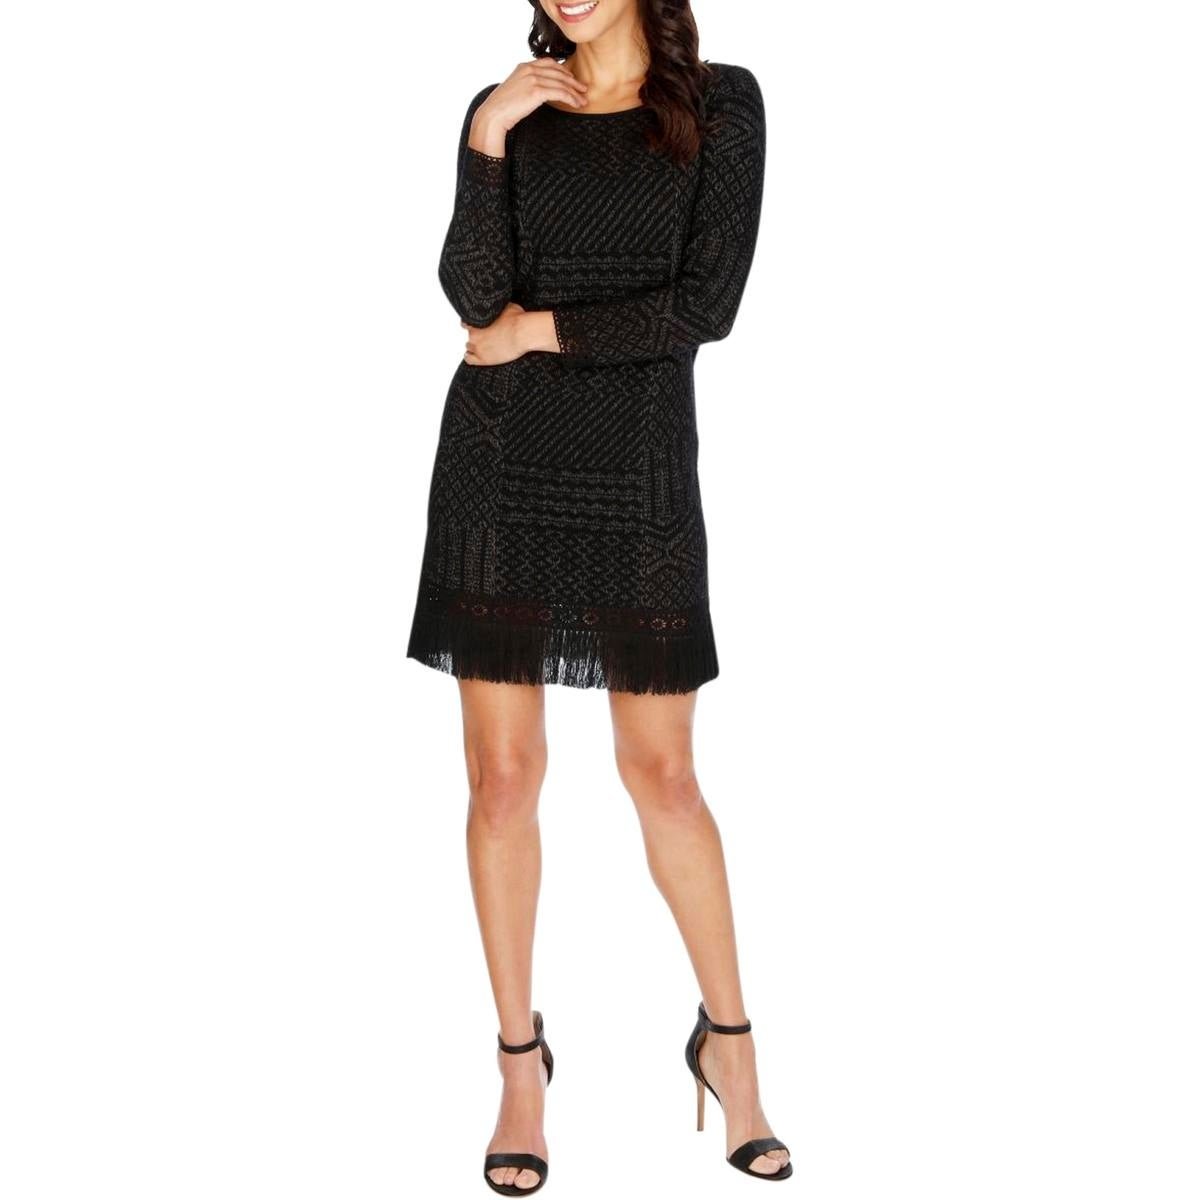 df66095573 Shop Lucky Brand Womens Sweaterdress Workwear Casual - Free Shipping On  Orders Over  45 - Overstock - 20007801